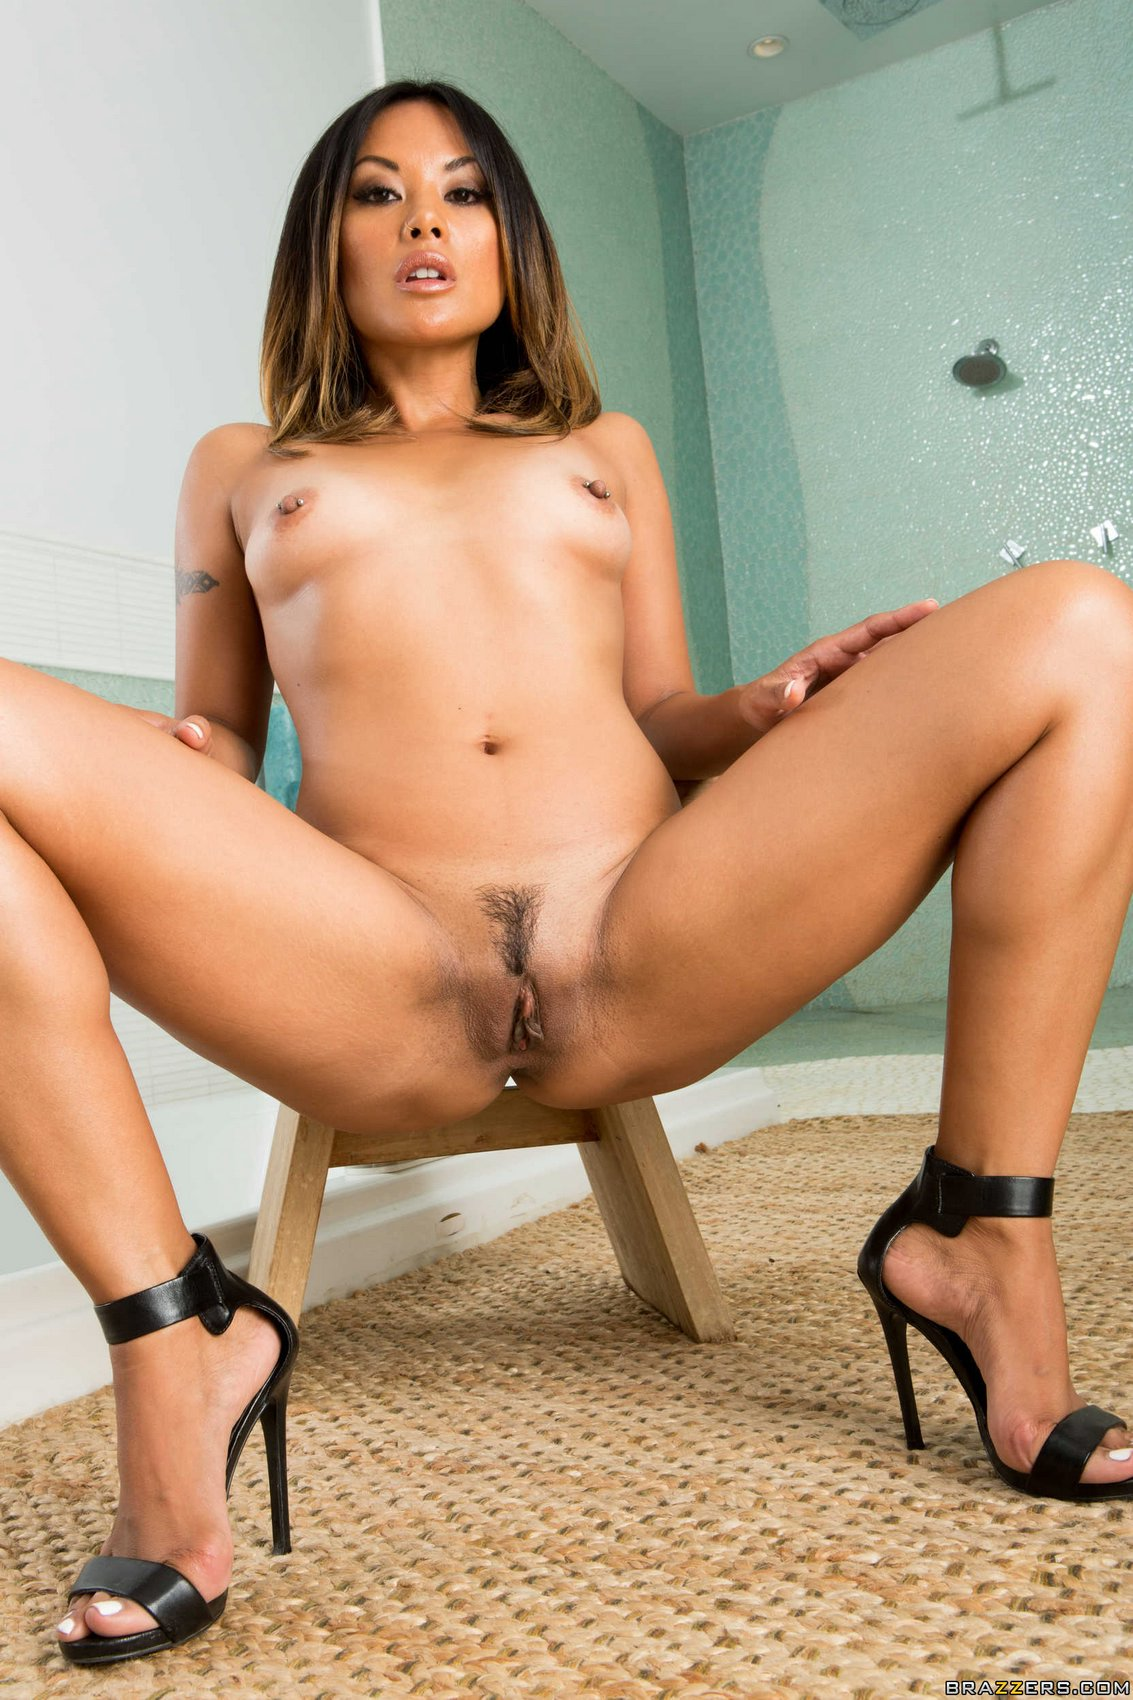 Teen pussy riding dick pictures